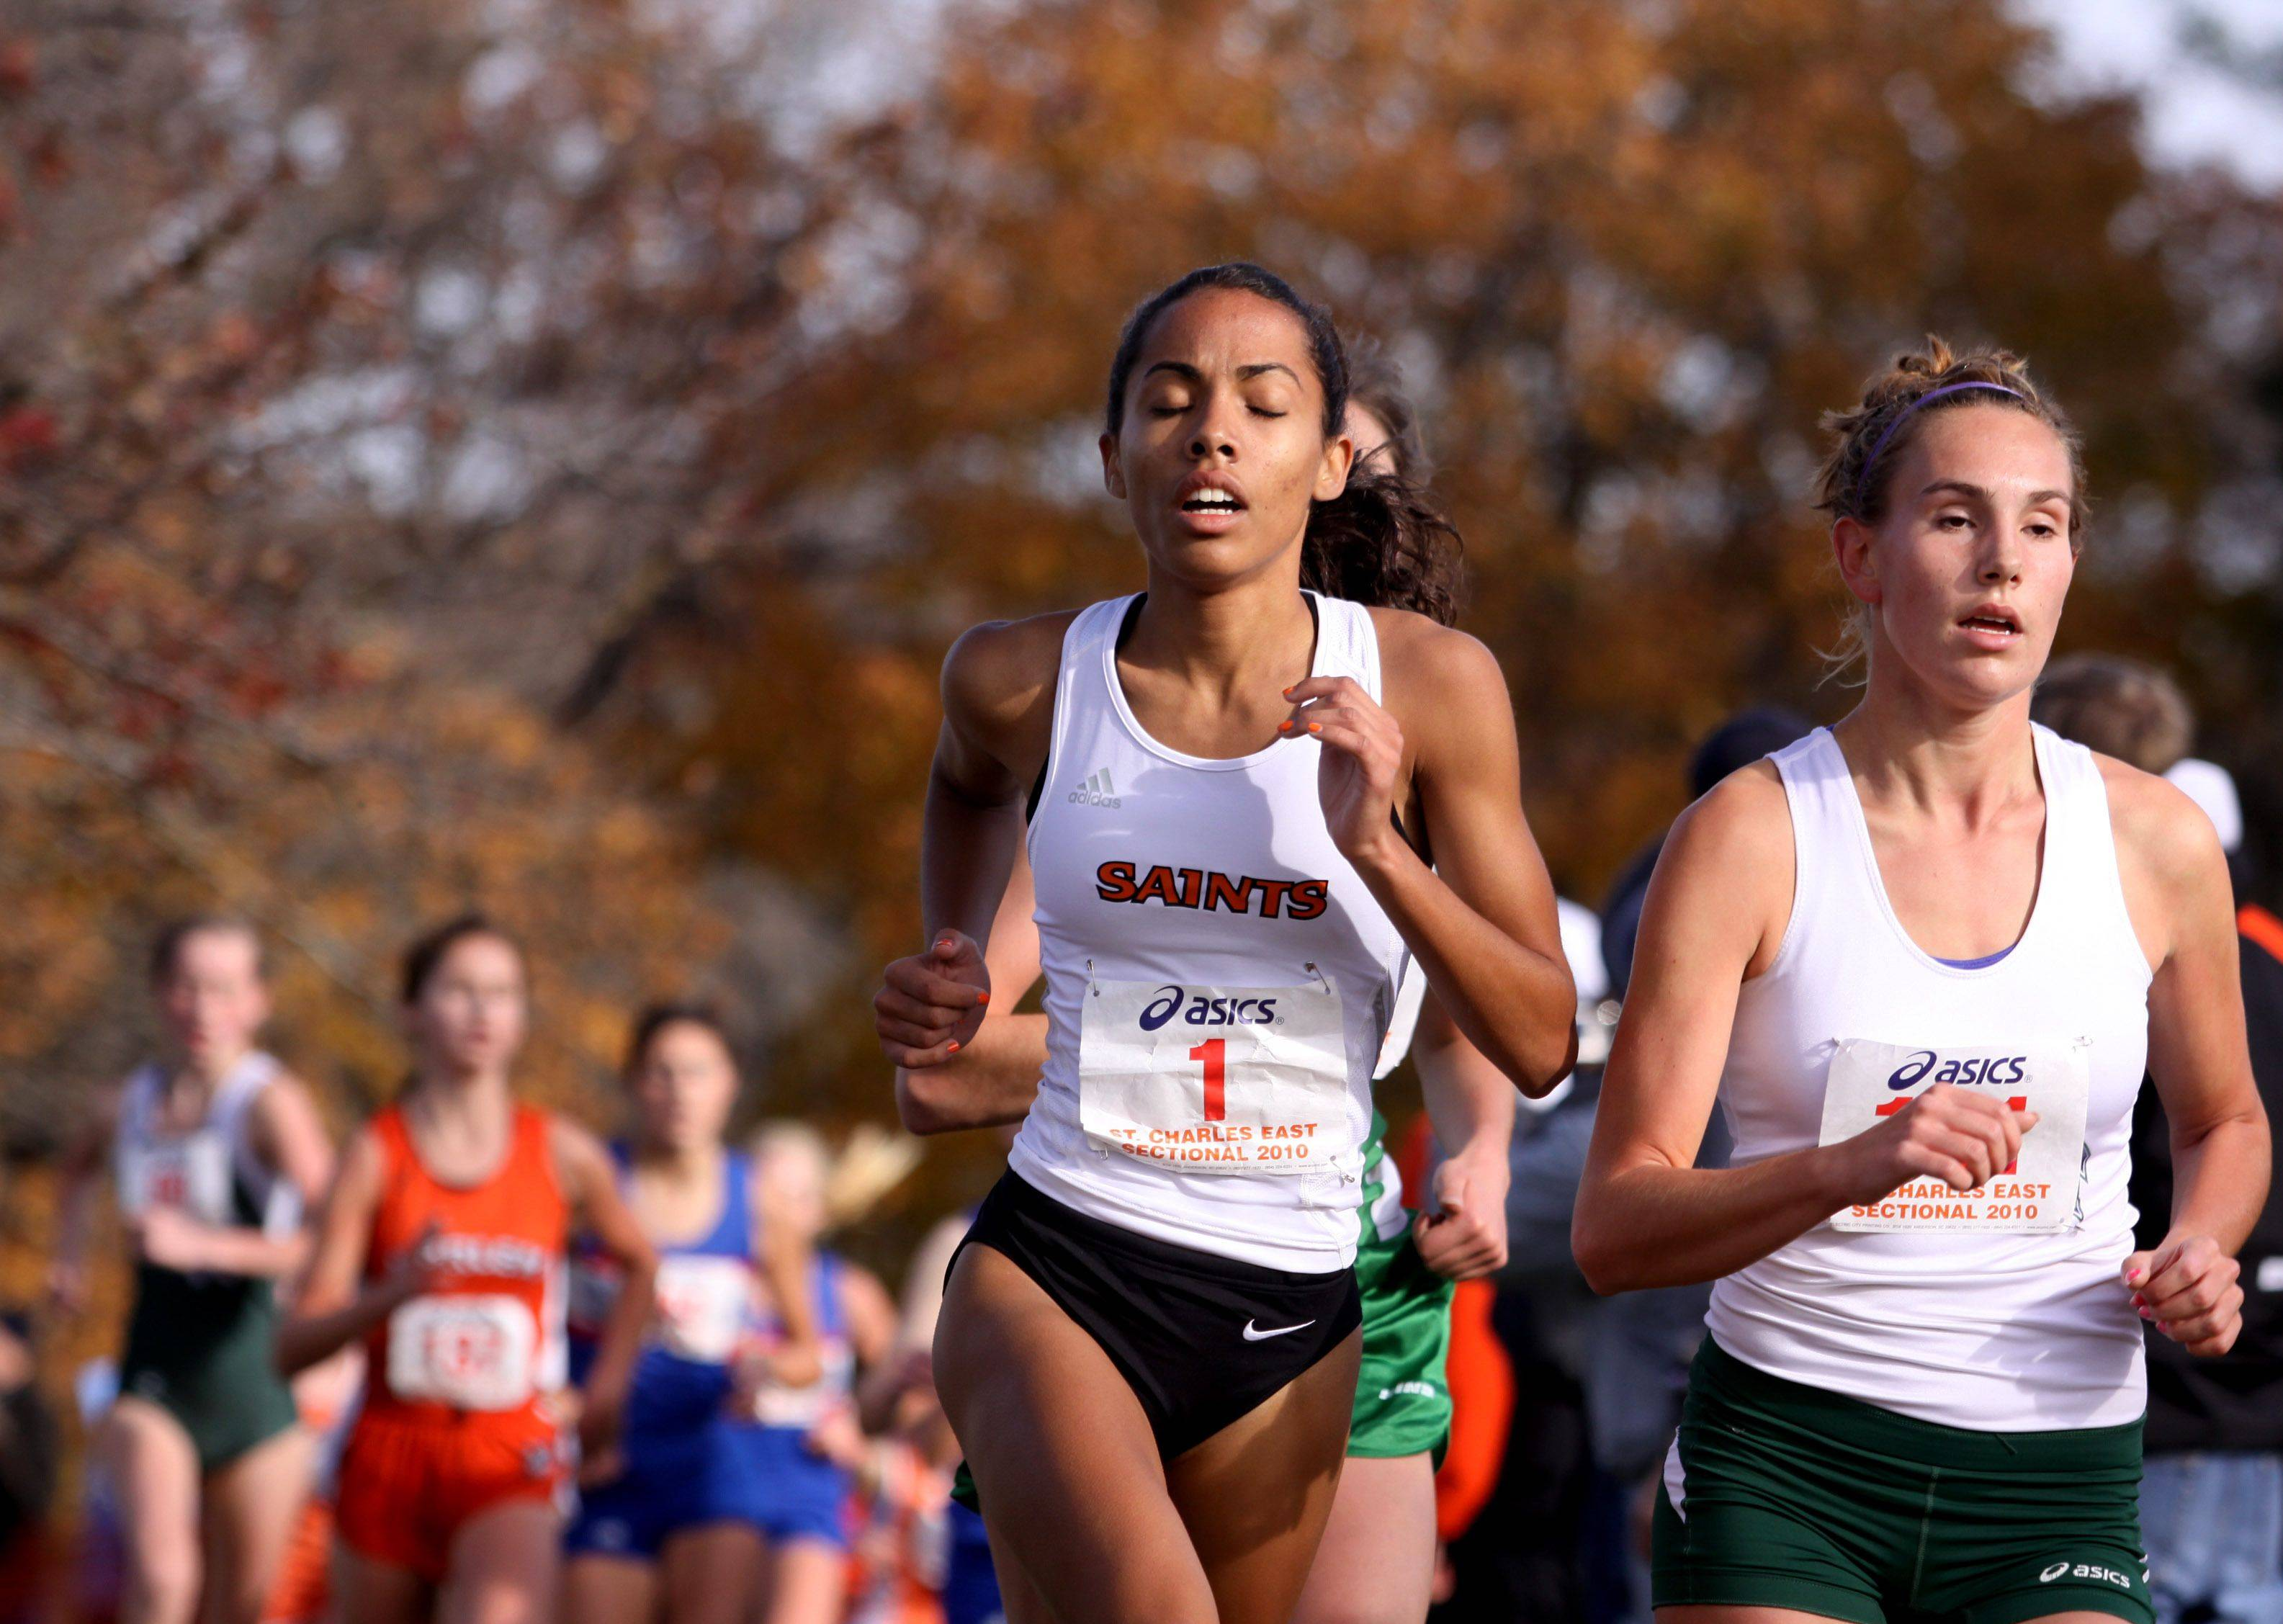 Jessica Evans, pictured running against Bartlett's Alyssa Schneider at sectionals last year, is part of a veteran St. Charles East team coming off a third-place finish at state in 2011.